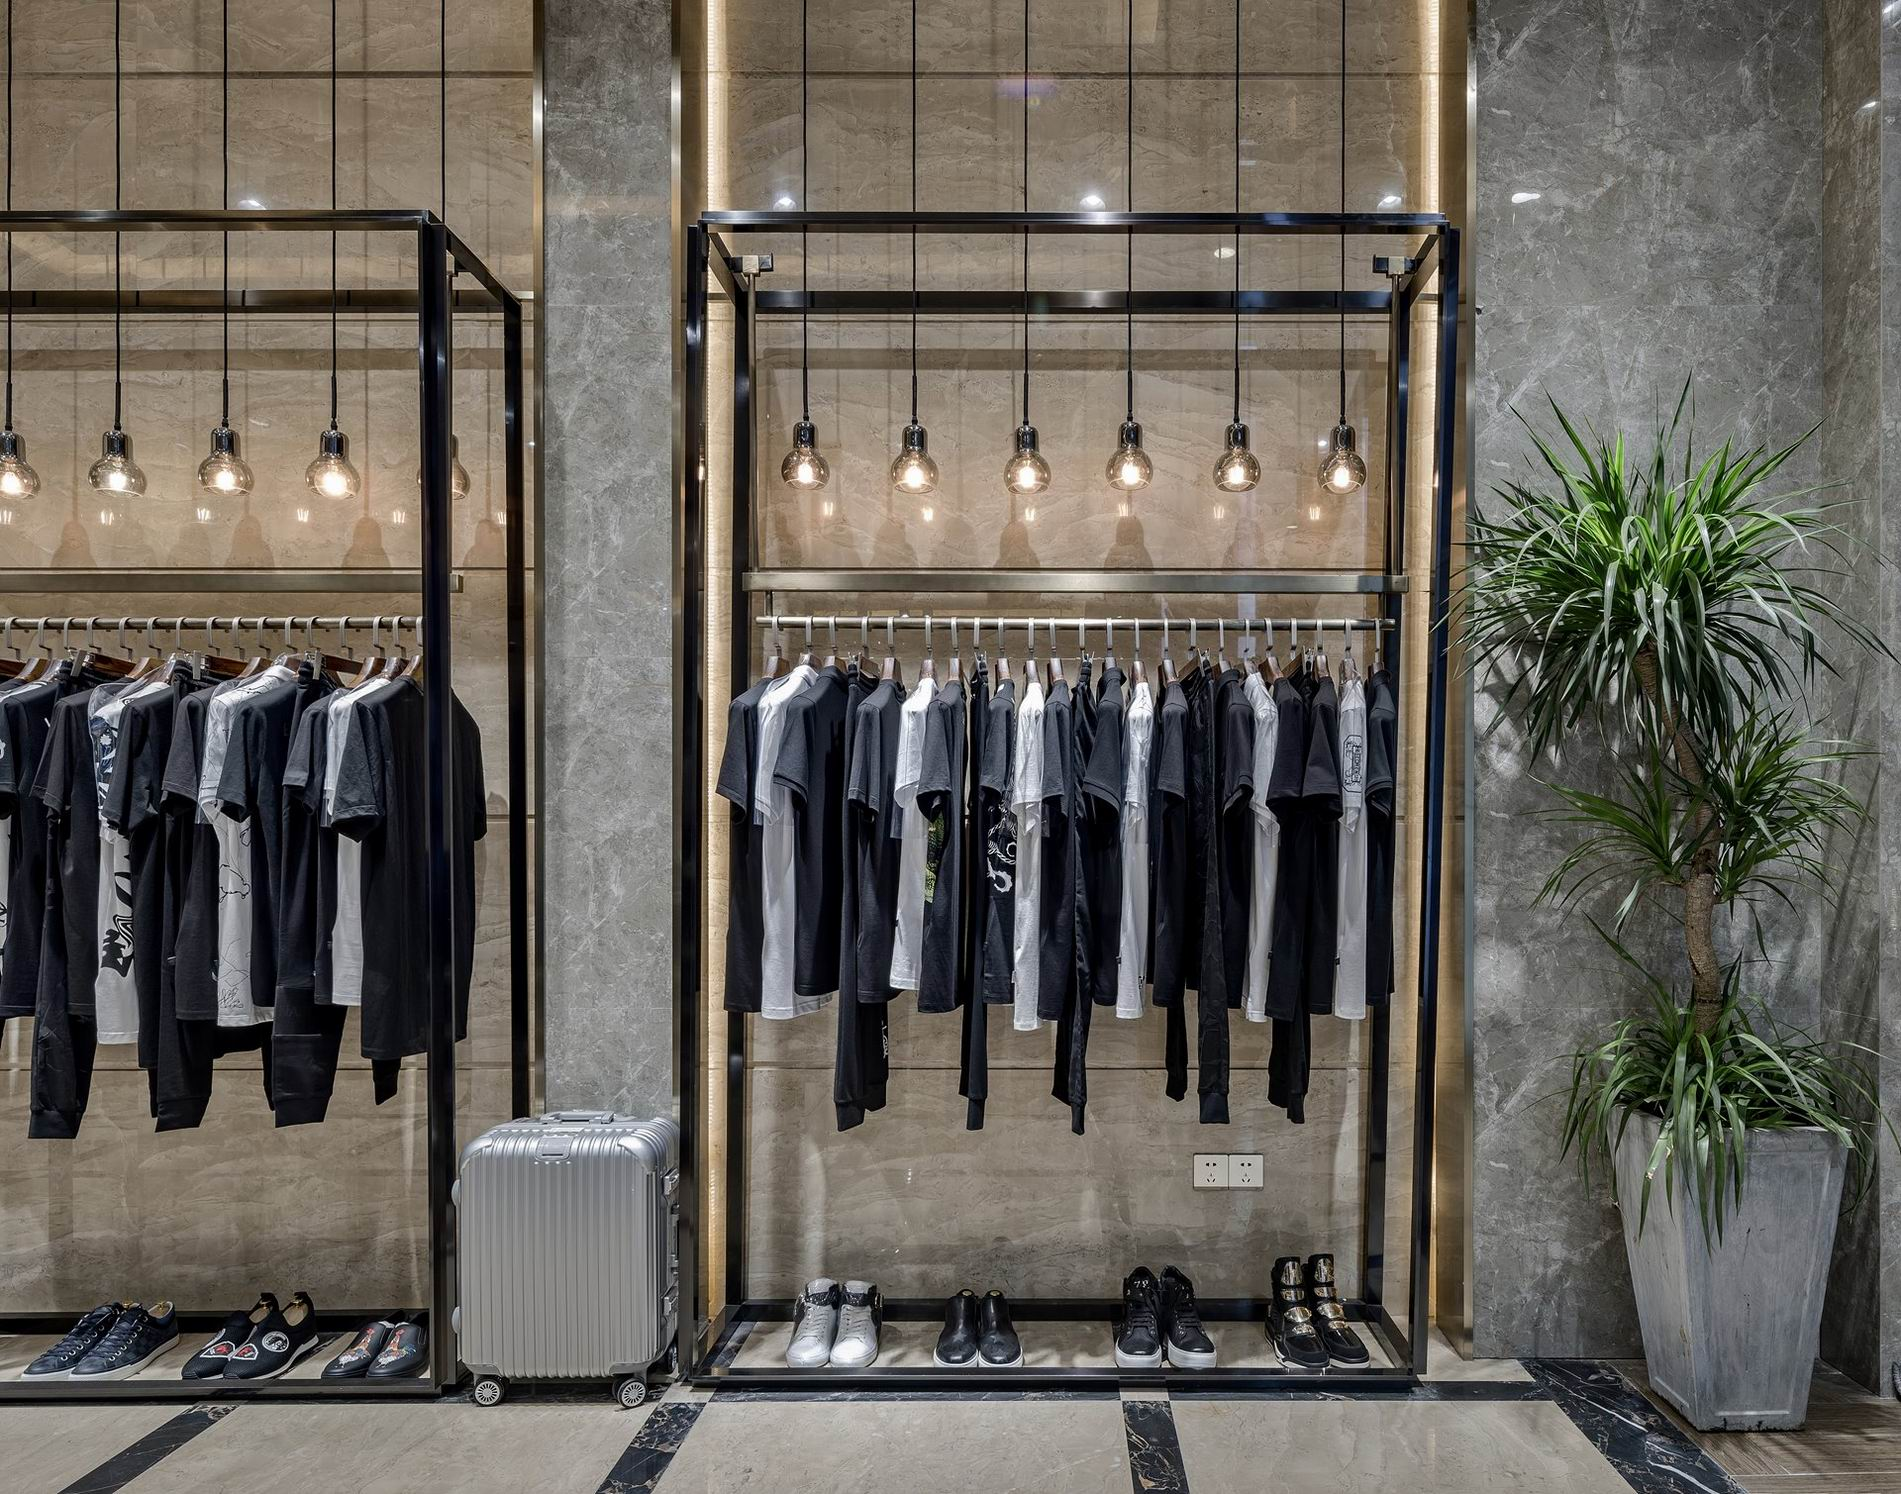 OUYEE free delivery tailoring shop interior design at discount underwear display-7